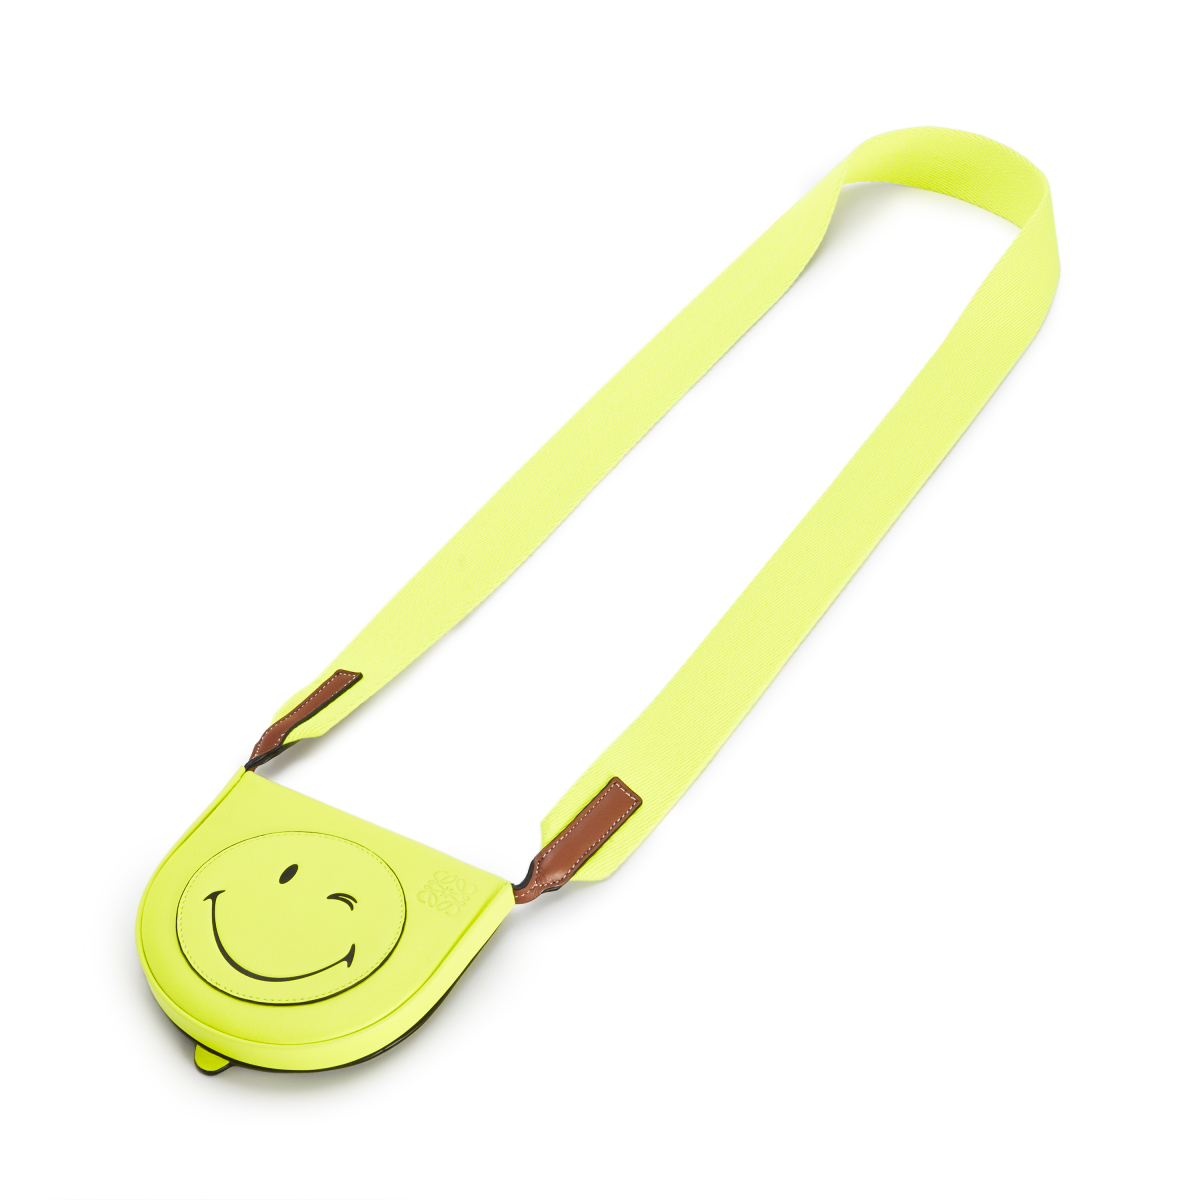 HEEL POUCH SMALL SMILEY WINK(H15×W17.5×D4.5cm)¥68,000 ※日本限定/ロエベ ジャパン クライアントサービス LOEWE Paula's 2020 featuring SmileyWorld®